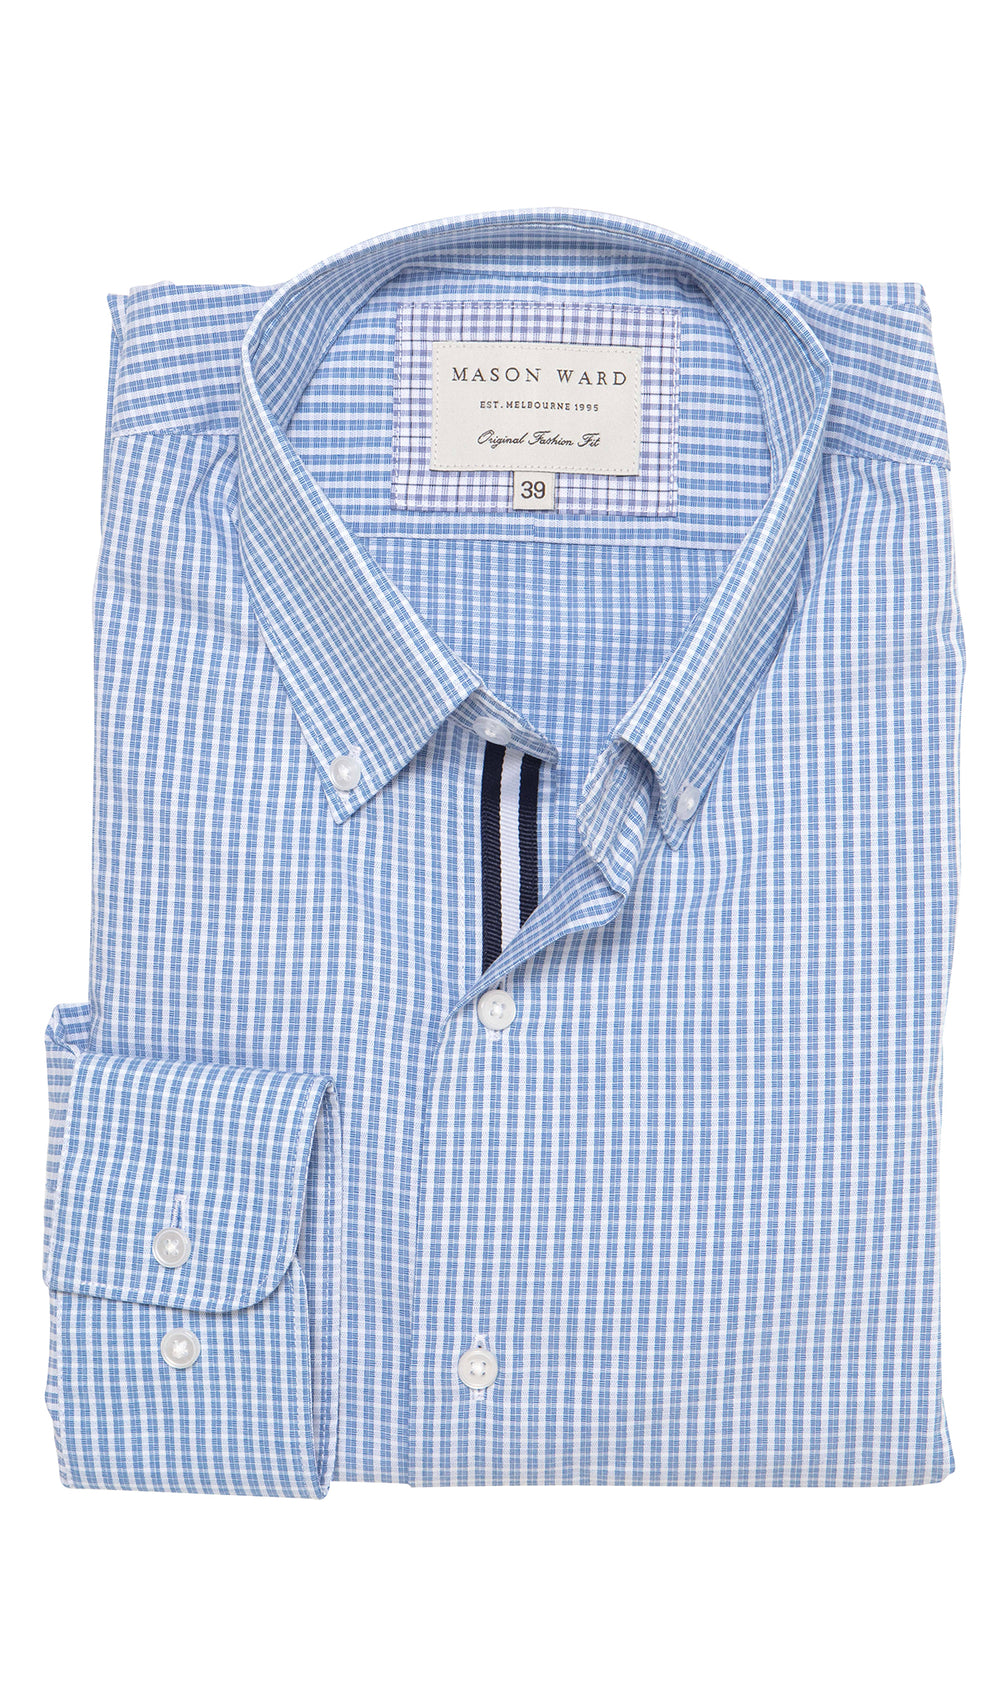 Mason Ward Hillerod Button Down Men's Fashion Fit/ Regular Cuff Shirt